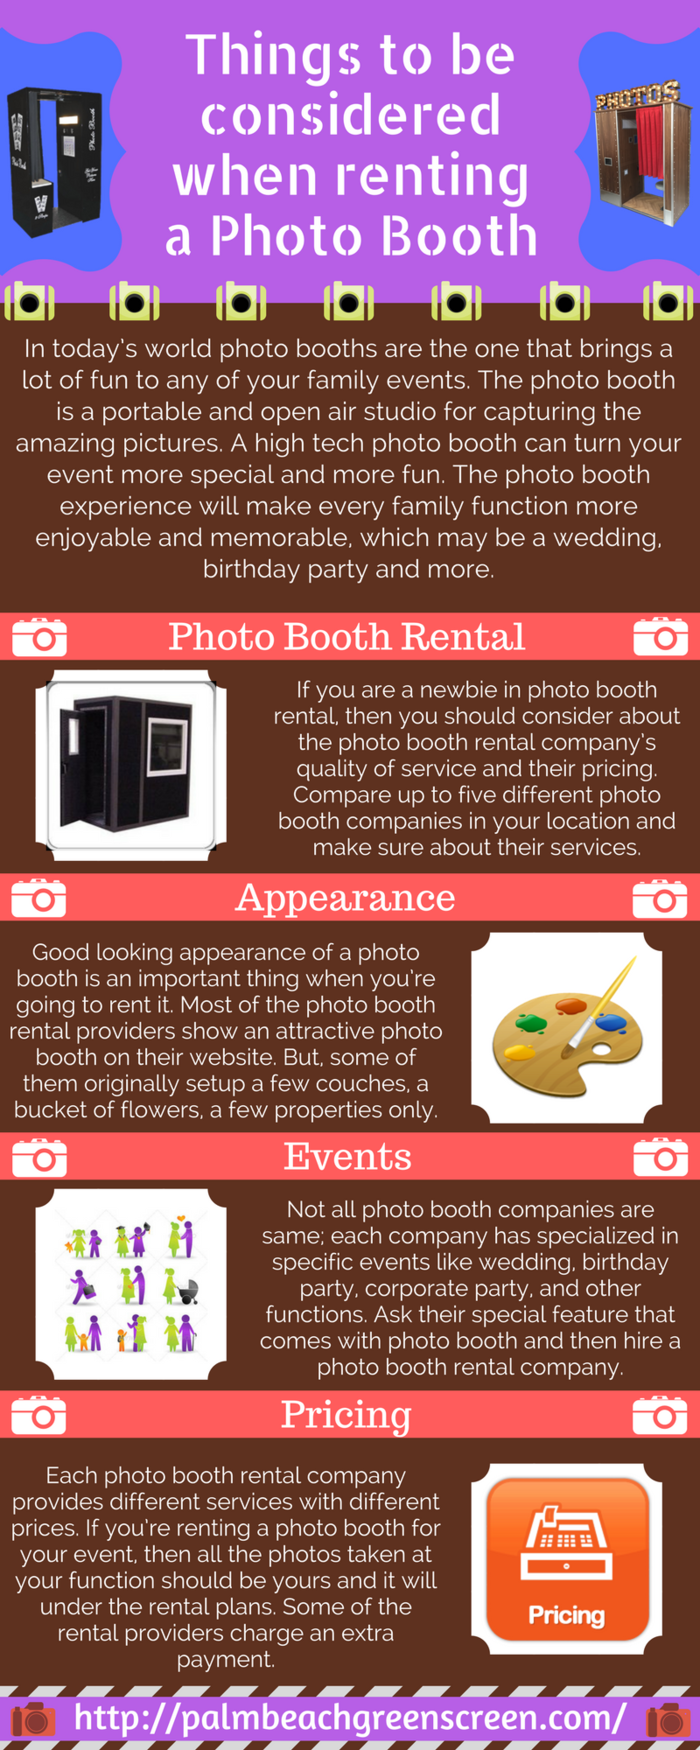 What's And How's of Renting a Photo Booth